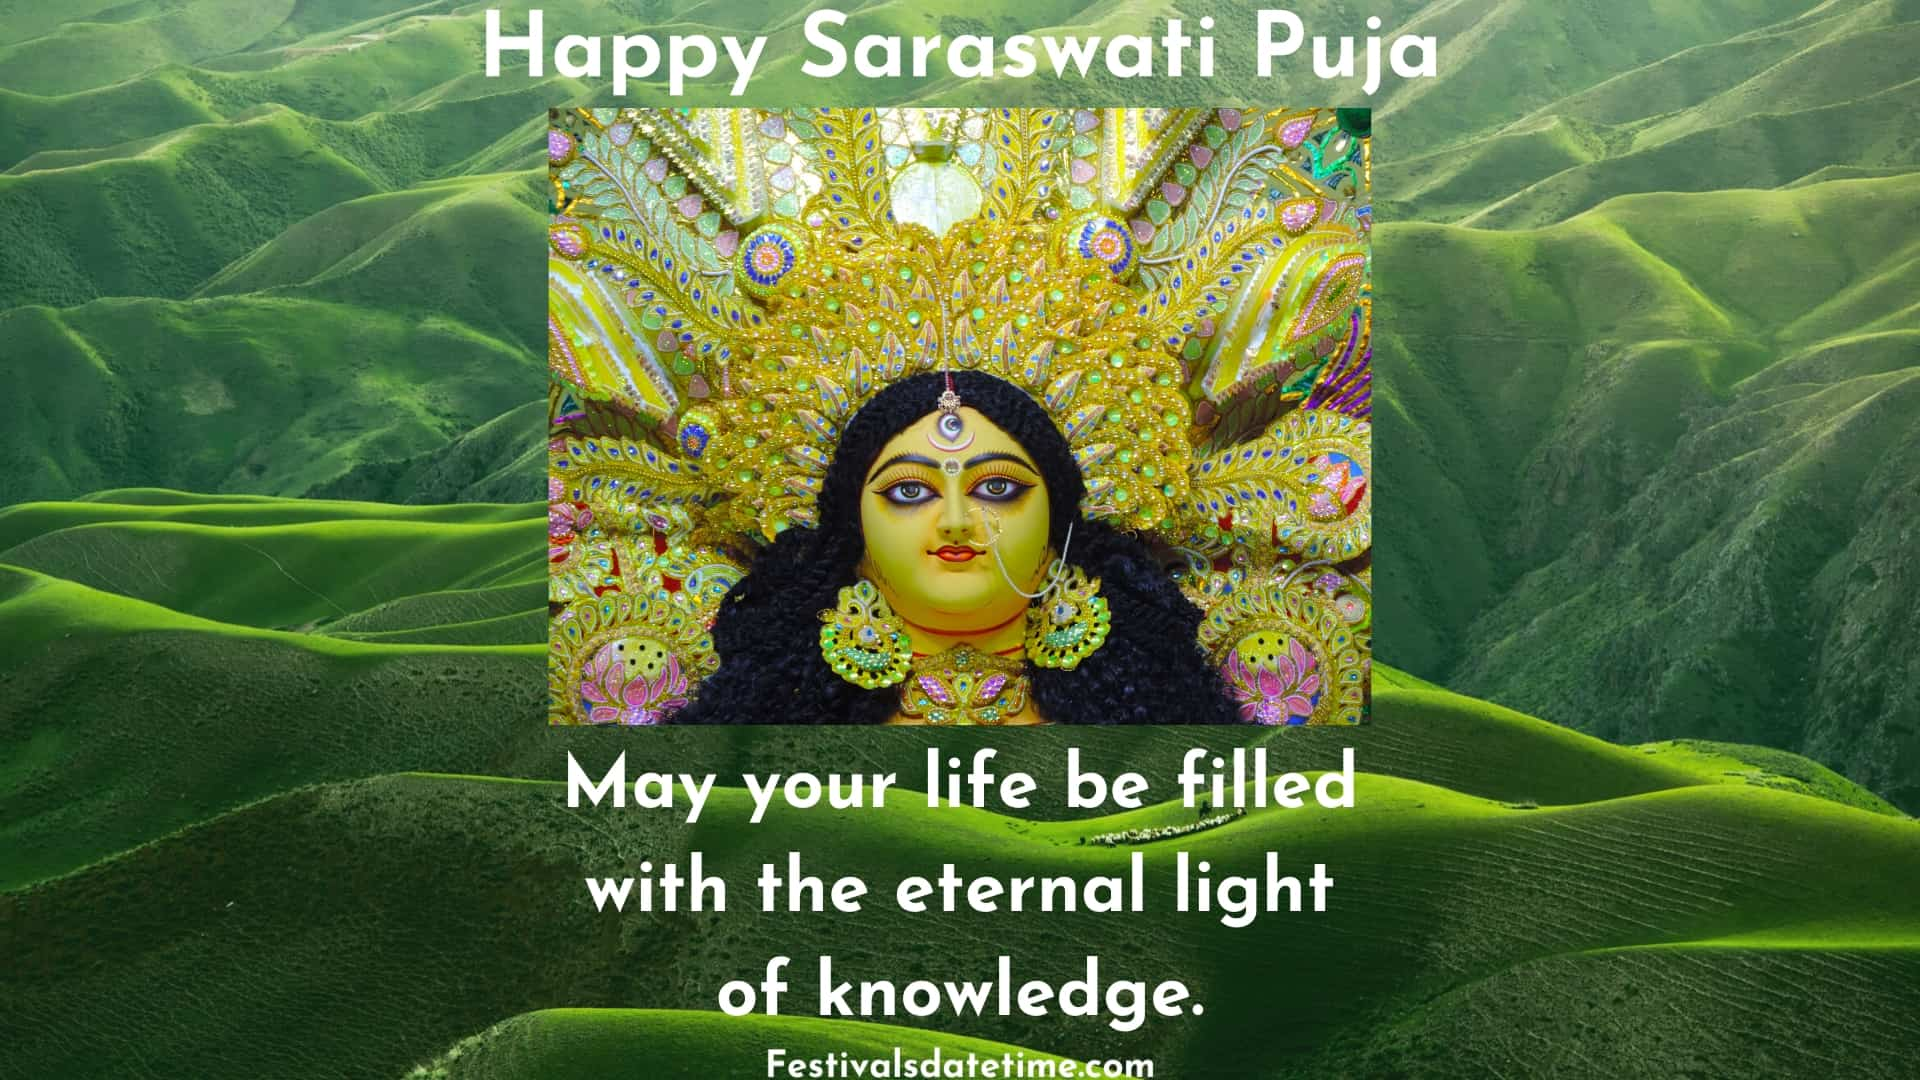 saraswati_puja_wishes_images_2020